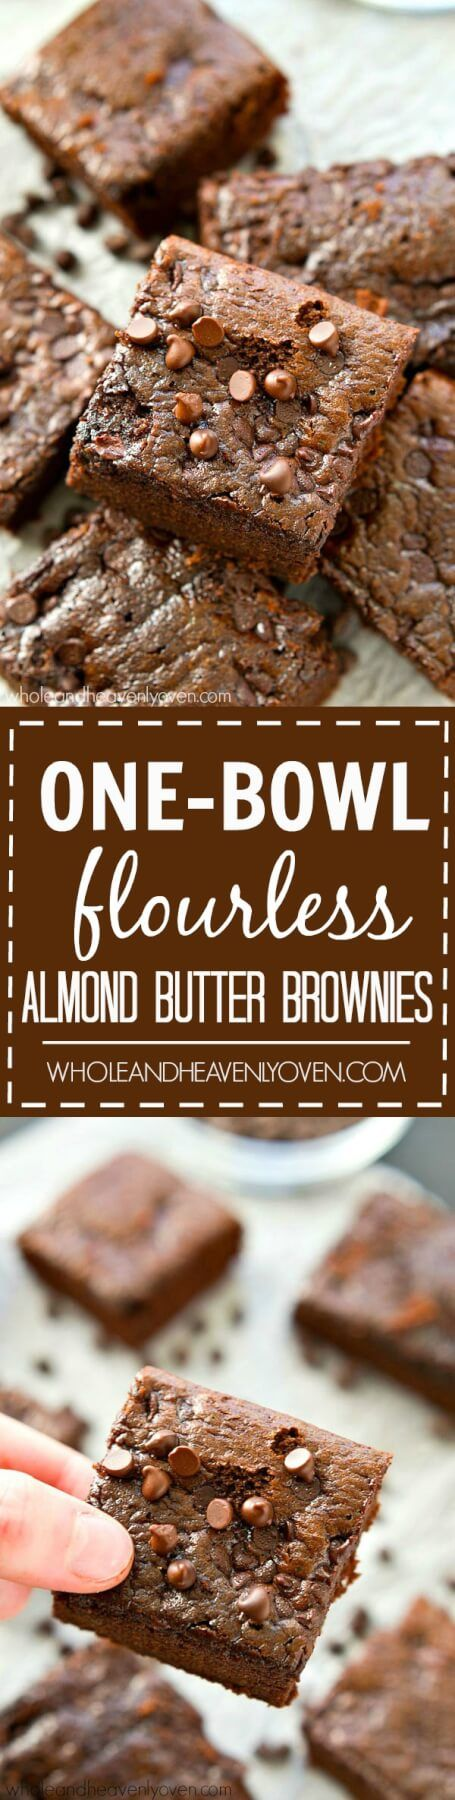 Need a healthy brownie recipe that is paleo friendly? Check out this list of clean eating brownie recipes. Pin this now to refer to when you need a healthy dessert recipe.